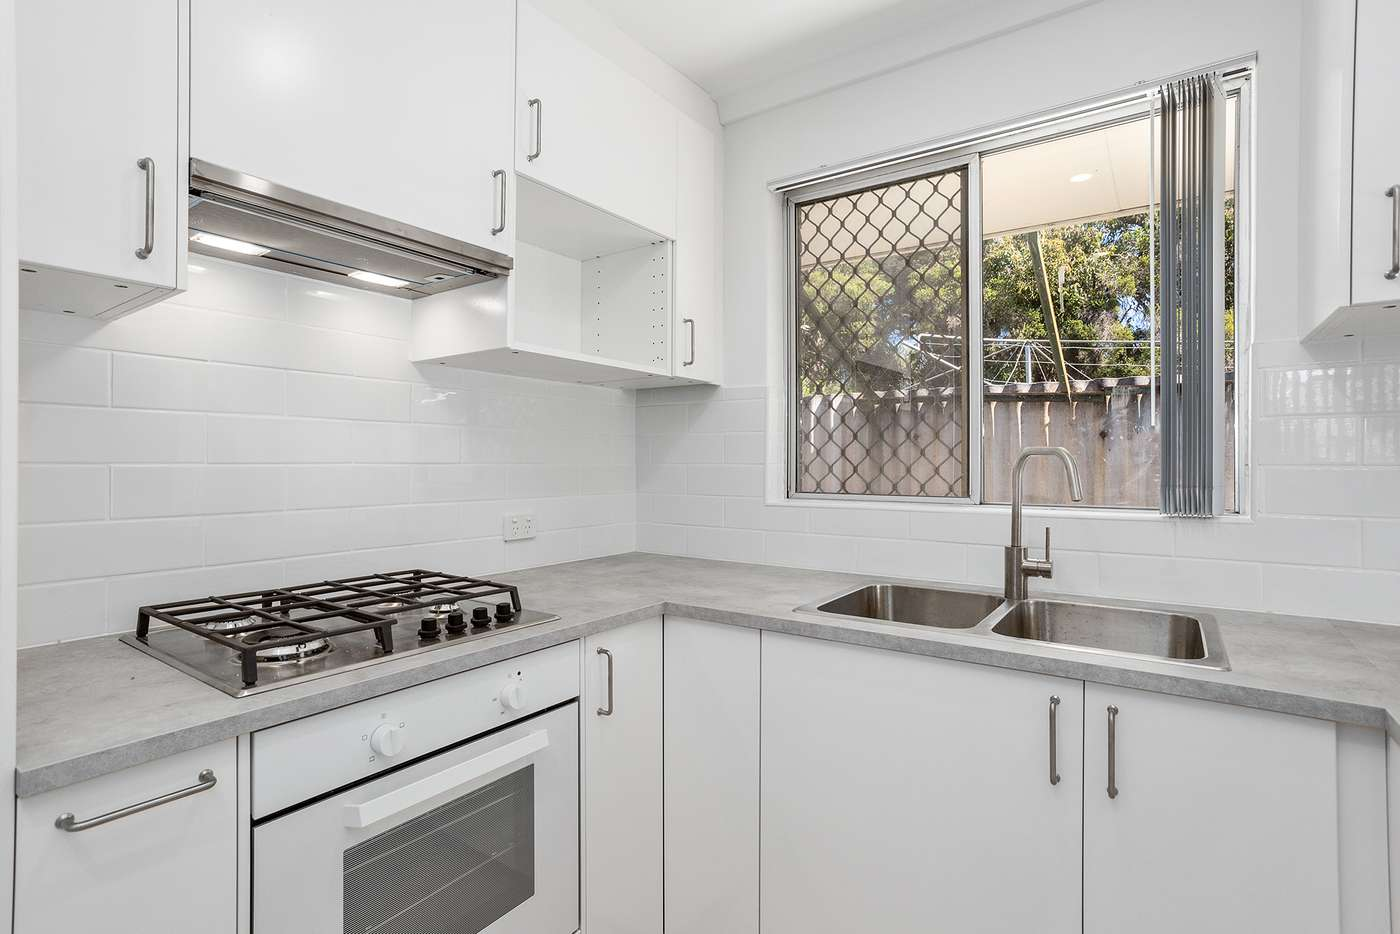 Sixth view of Homely house listing, 459B Coode Street, Dianella WA 6059